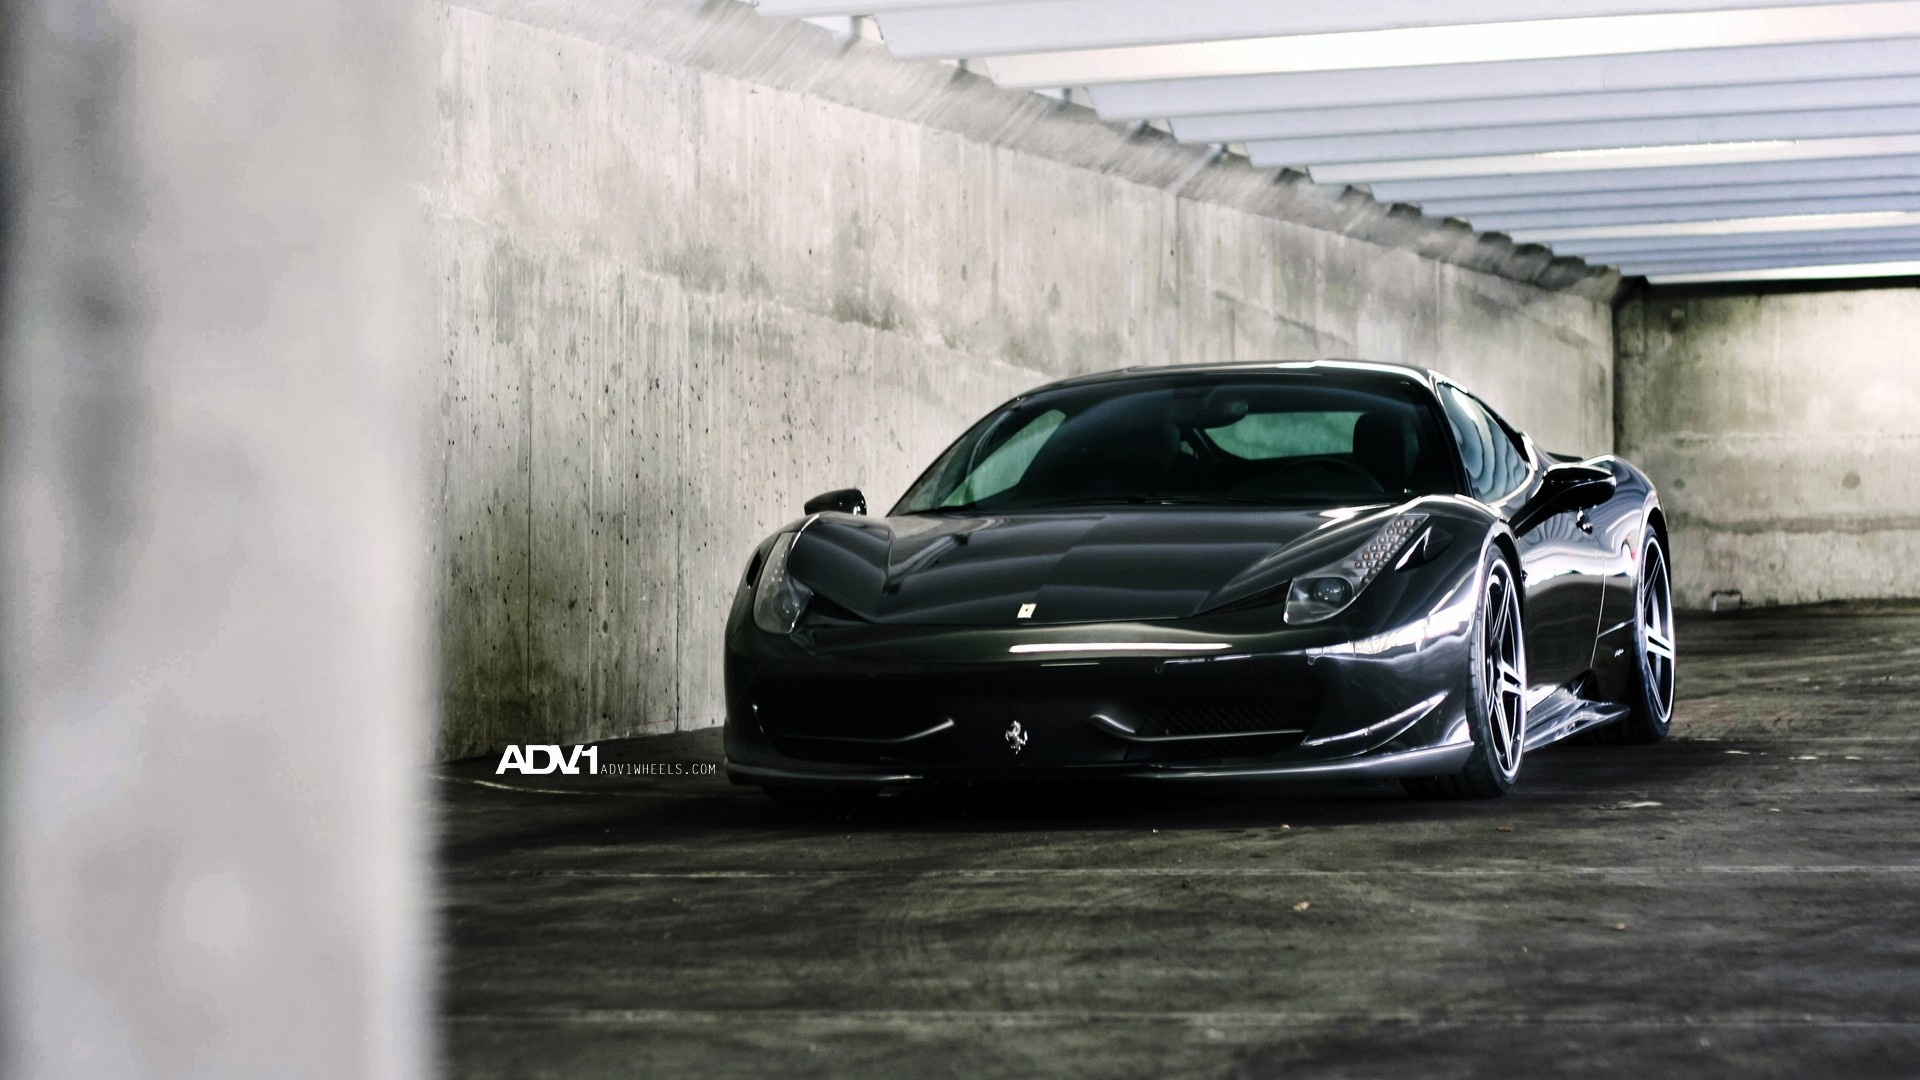 2 Ferrari 458 Adv 1 Hd Wallpapers Background Images